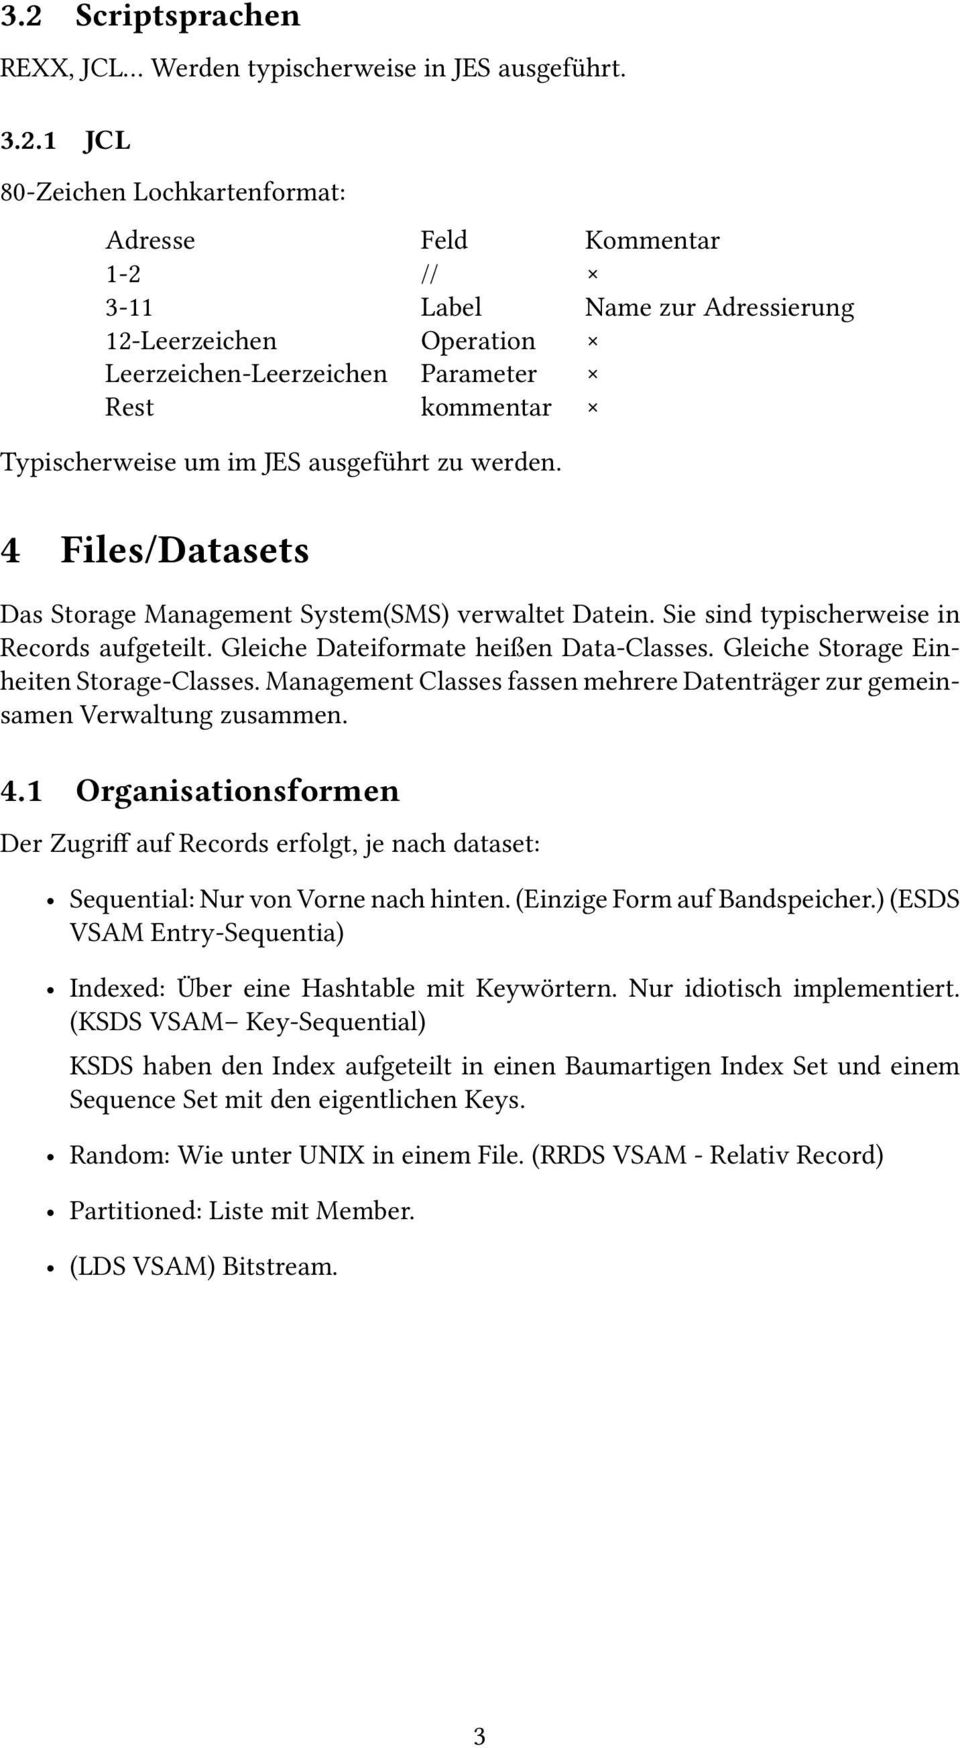 Sie sind typischerweise in Records aufgeteilt. Gleiche Dateiformate heißen Data-Classes. Gleiche Storage Einheiten Storage-Classes.